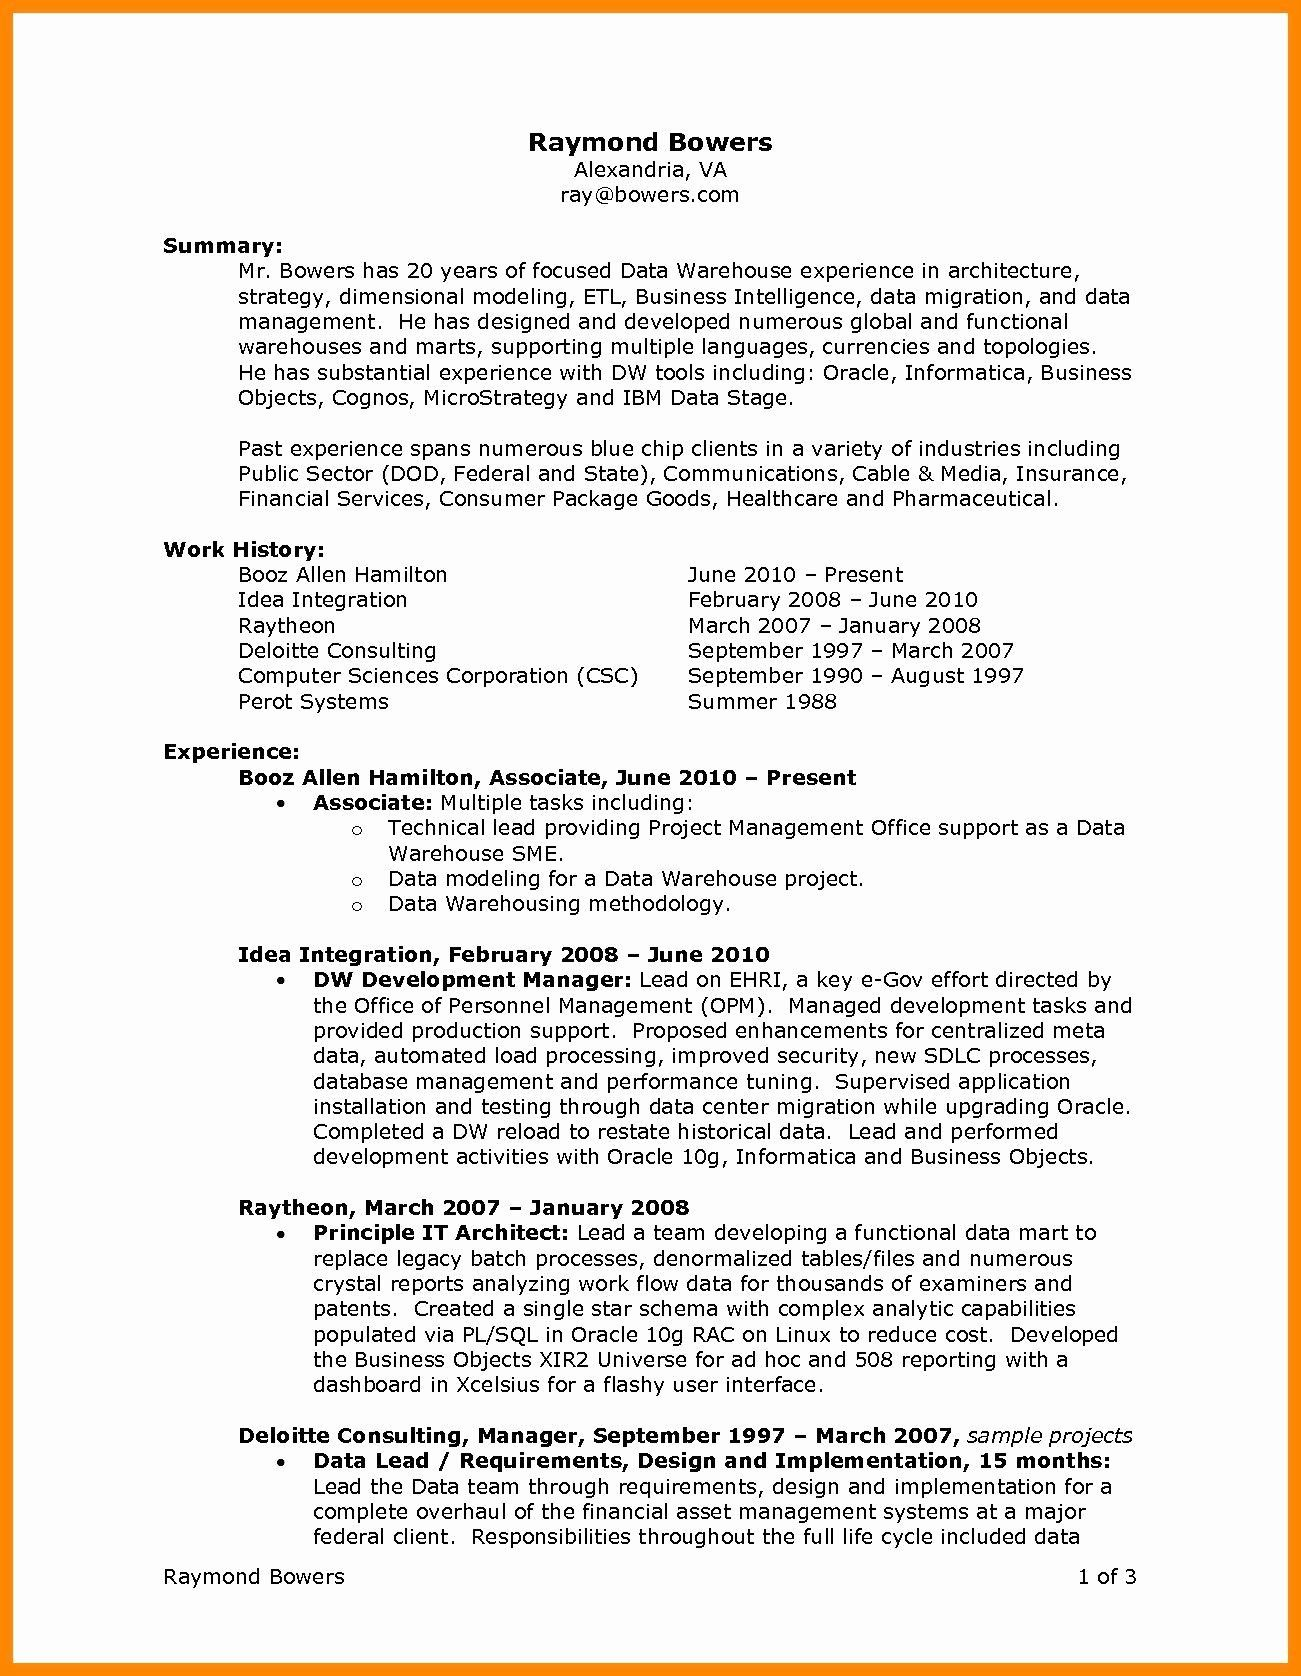 babysitter synonym for resume fresh internal promotion template free downloads mission Resume Babysitter Synonym For Resume